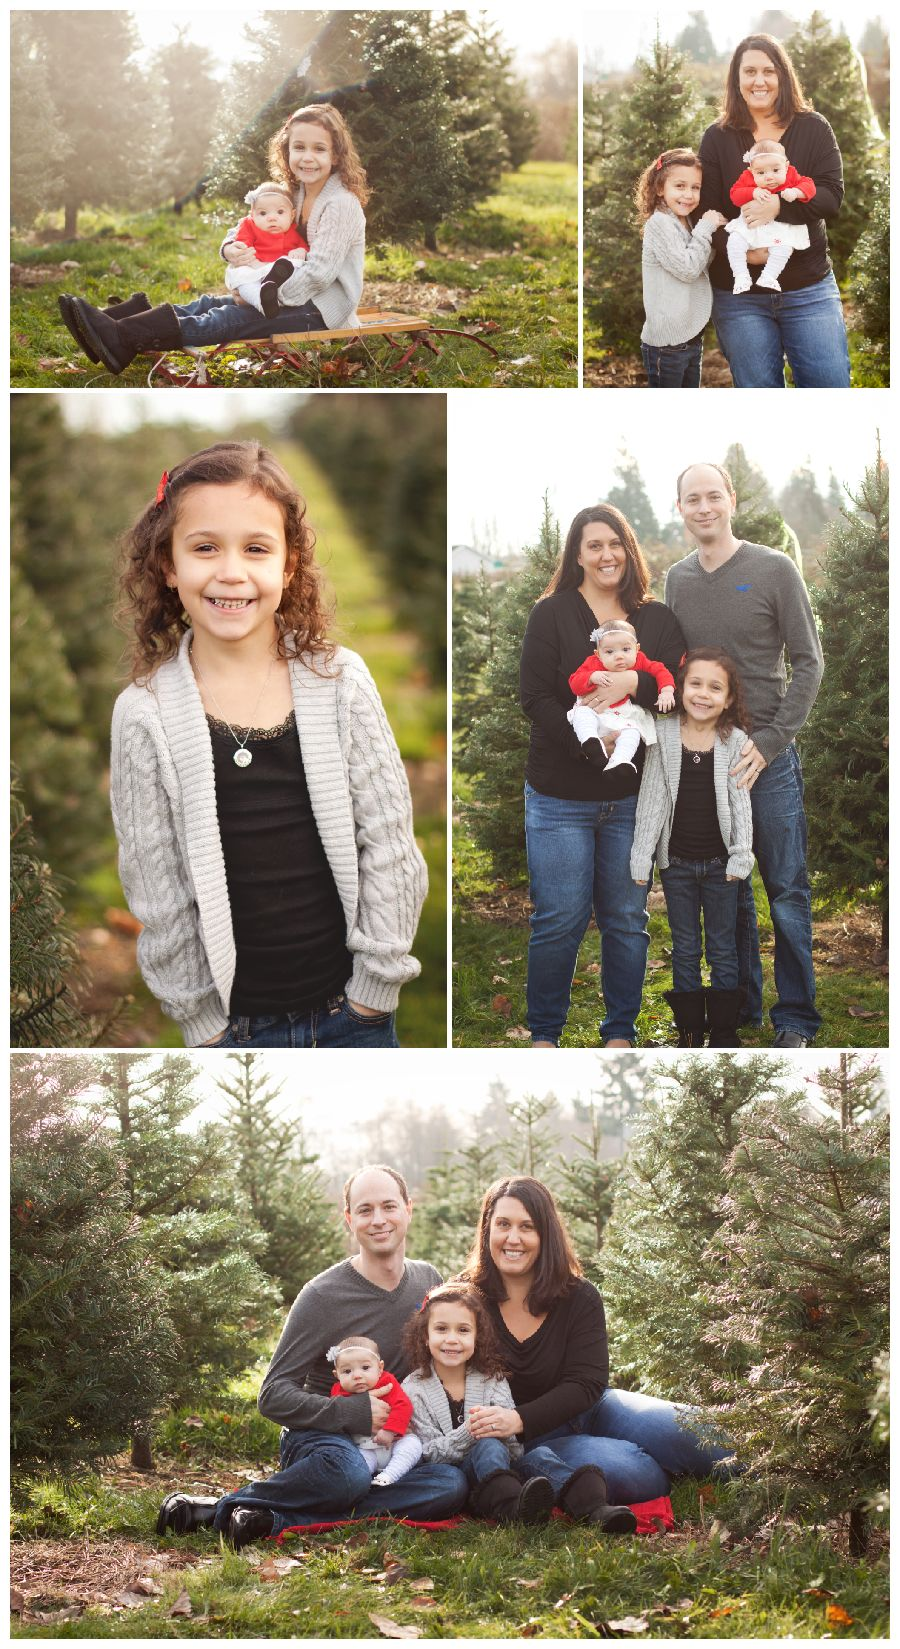 Christmas Tree Farm Mini Sessions.Christmas Tree Farm Mini Sessions Part 1 Puyallup Family